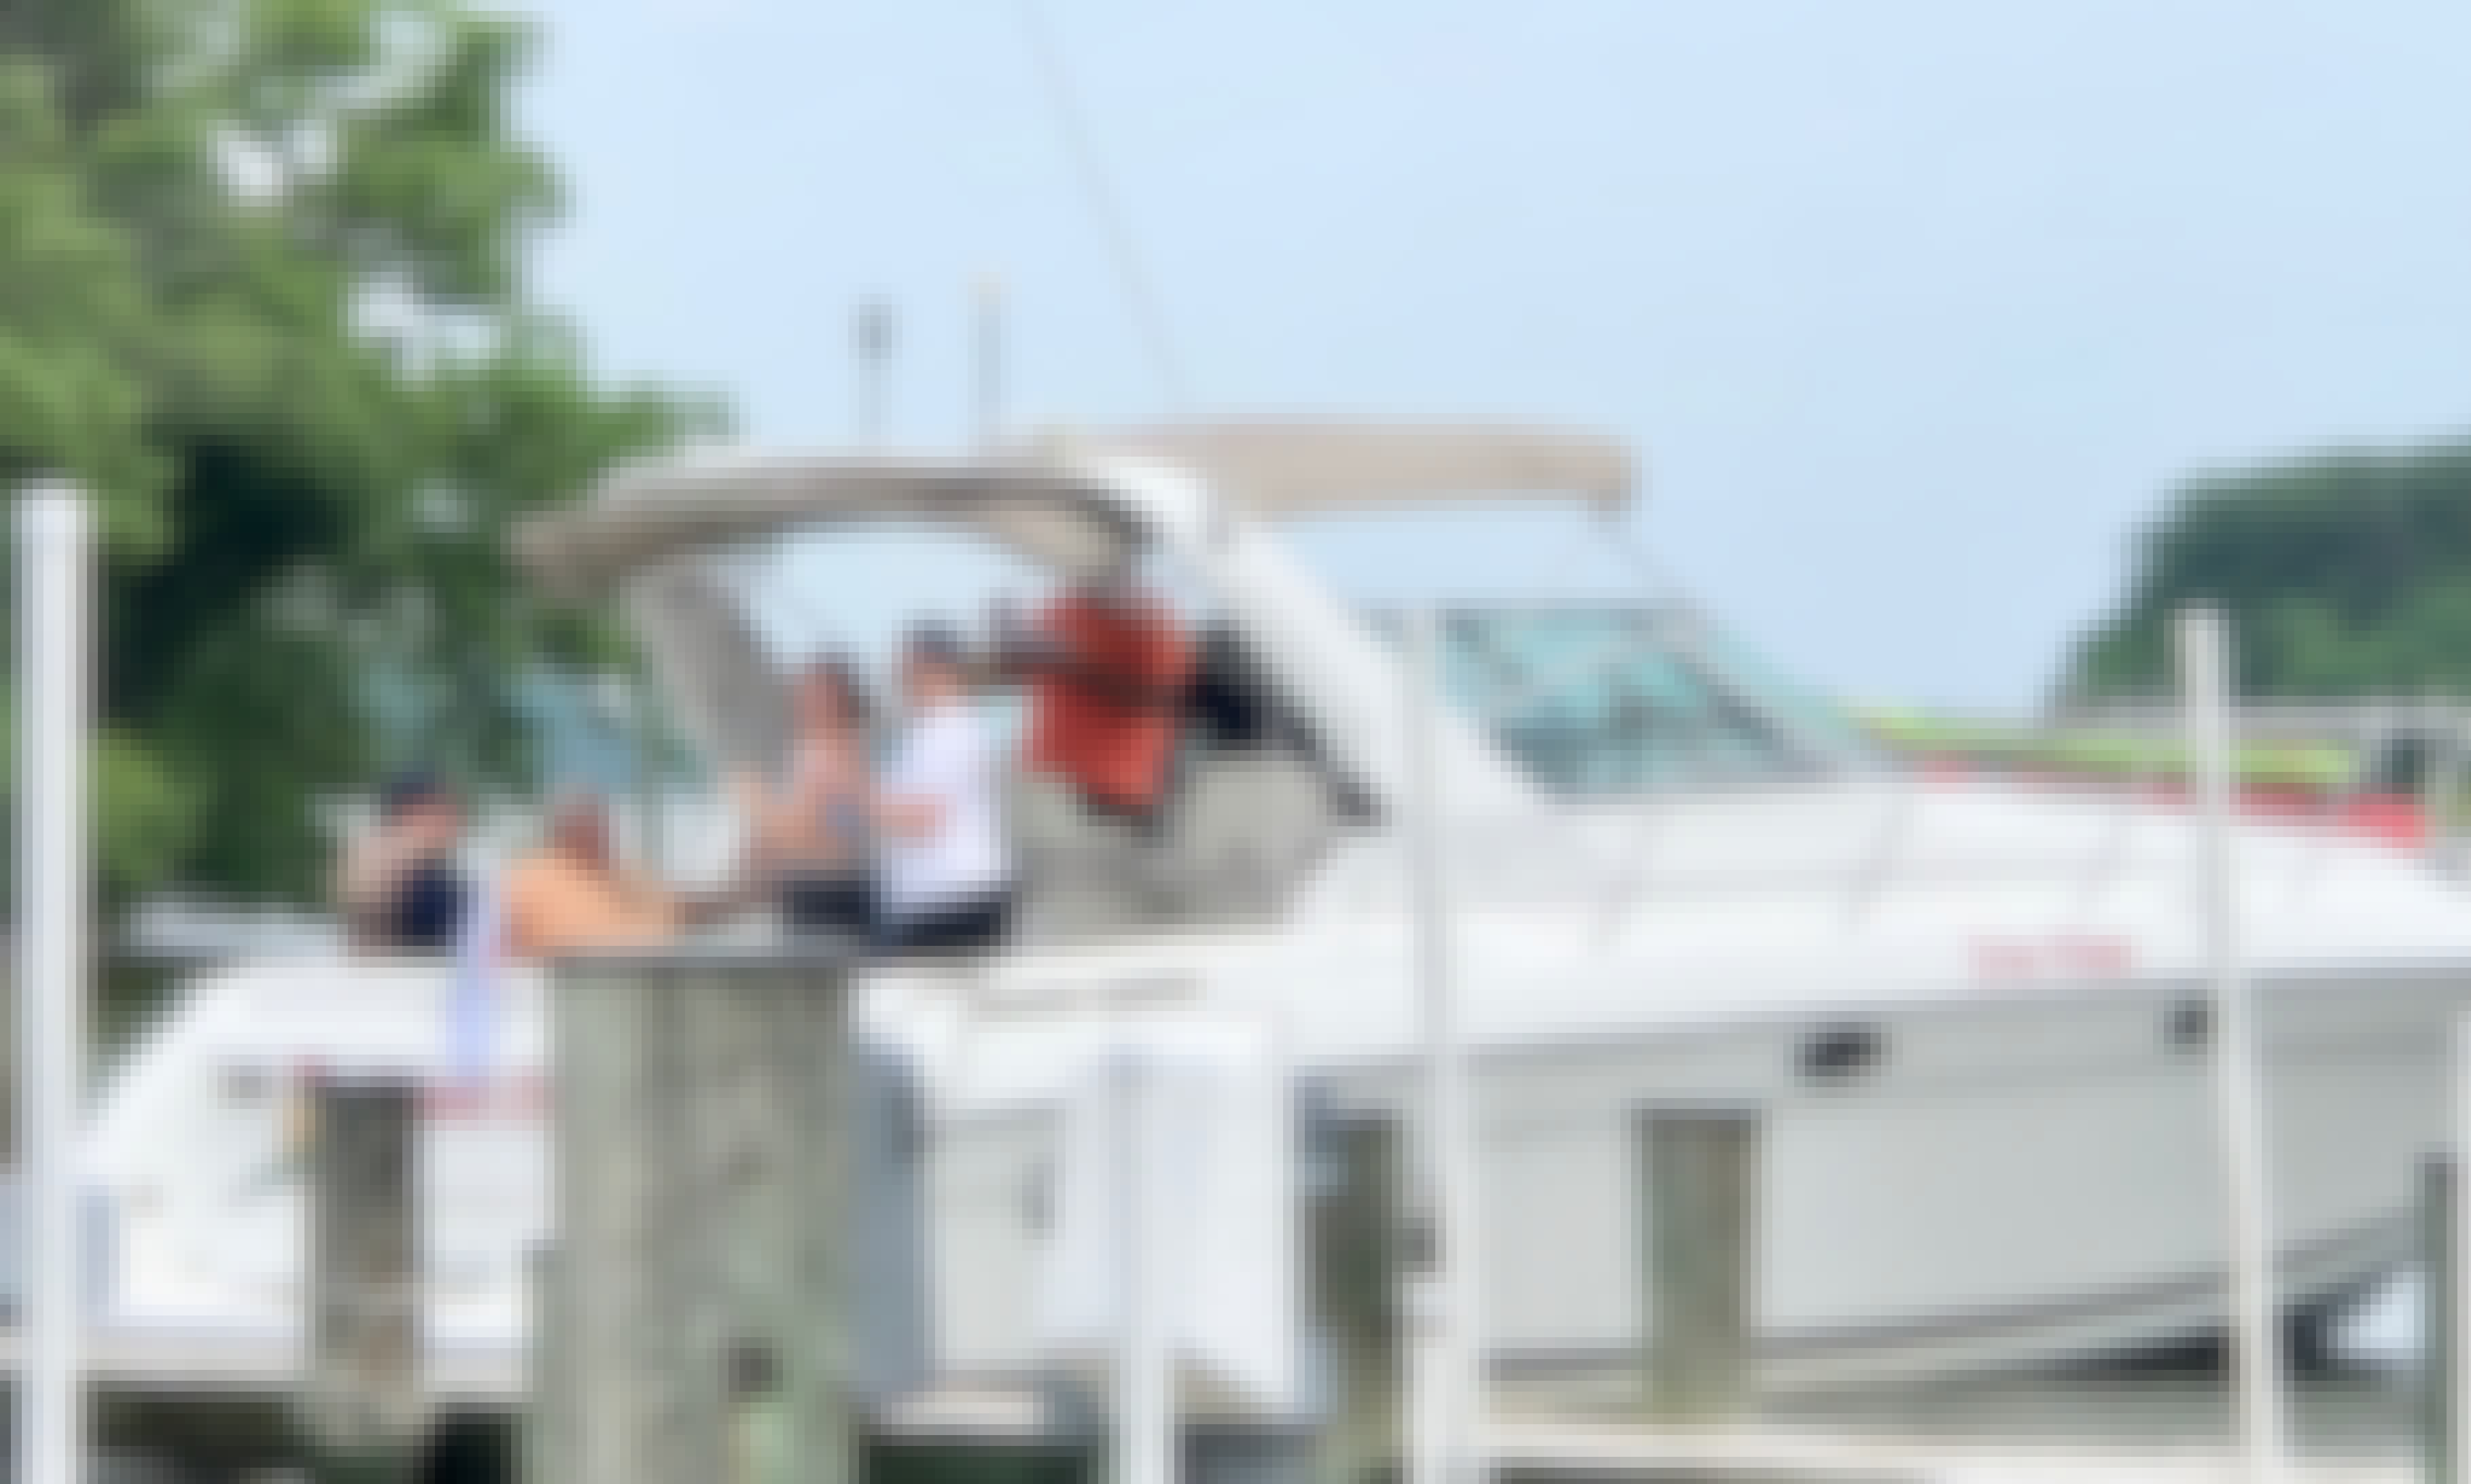 34' Powerboat Charter in Chesapeake Bay, Annapolis MD & South River